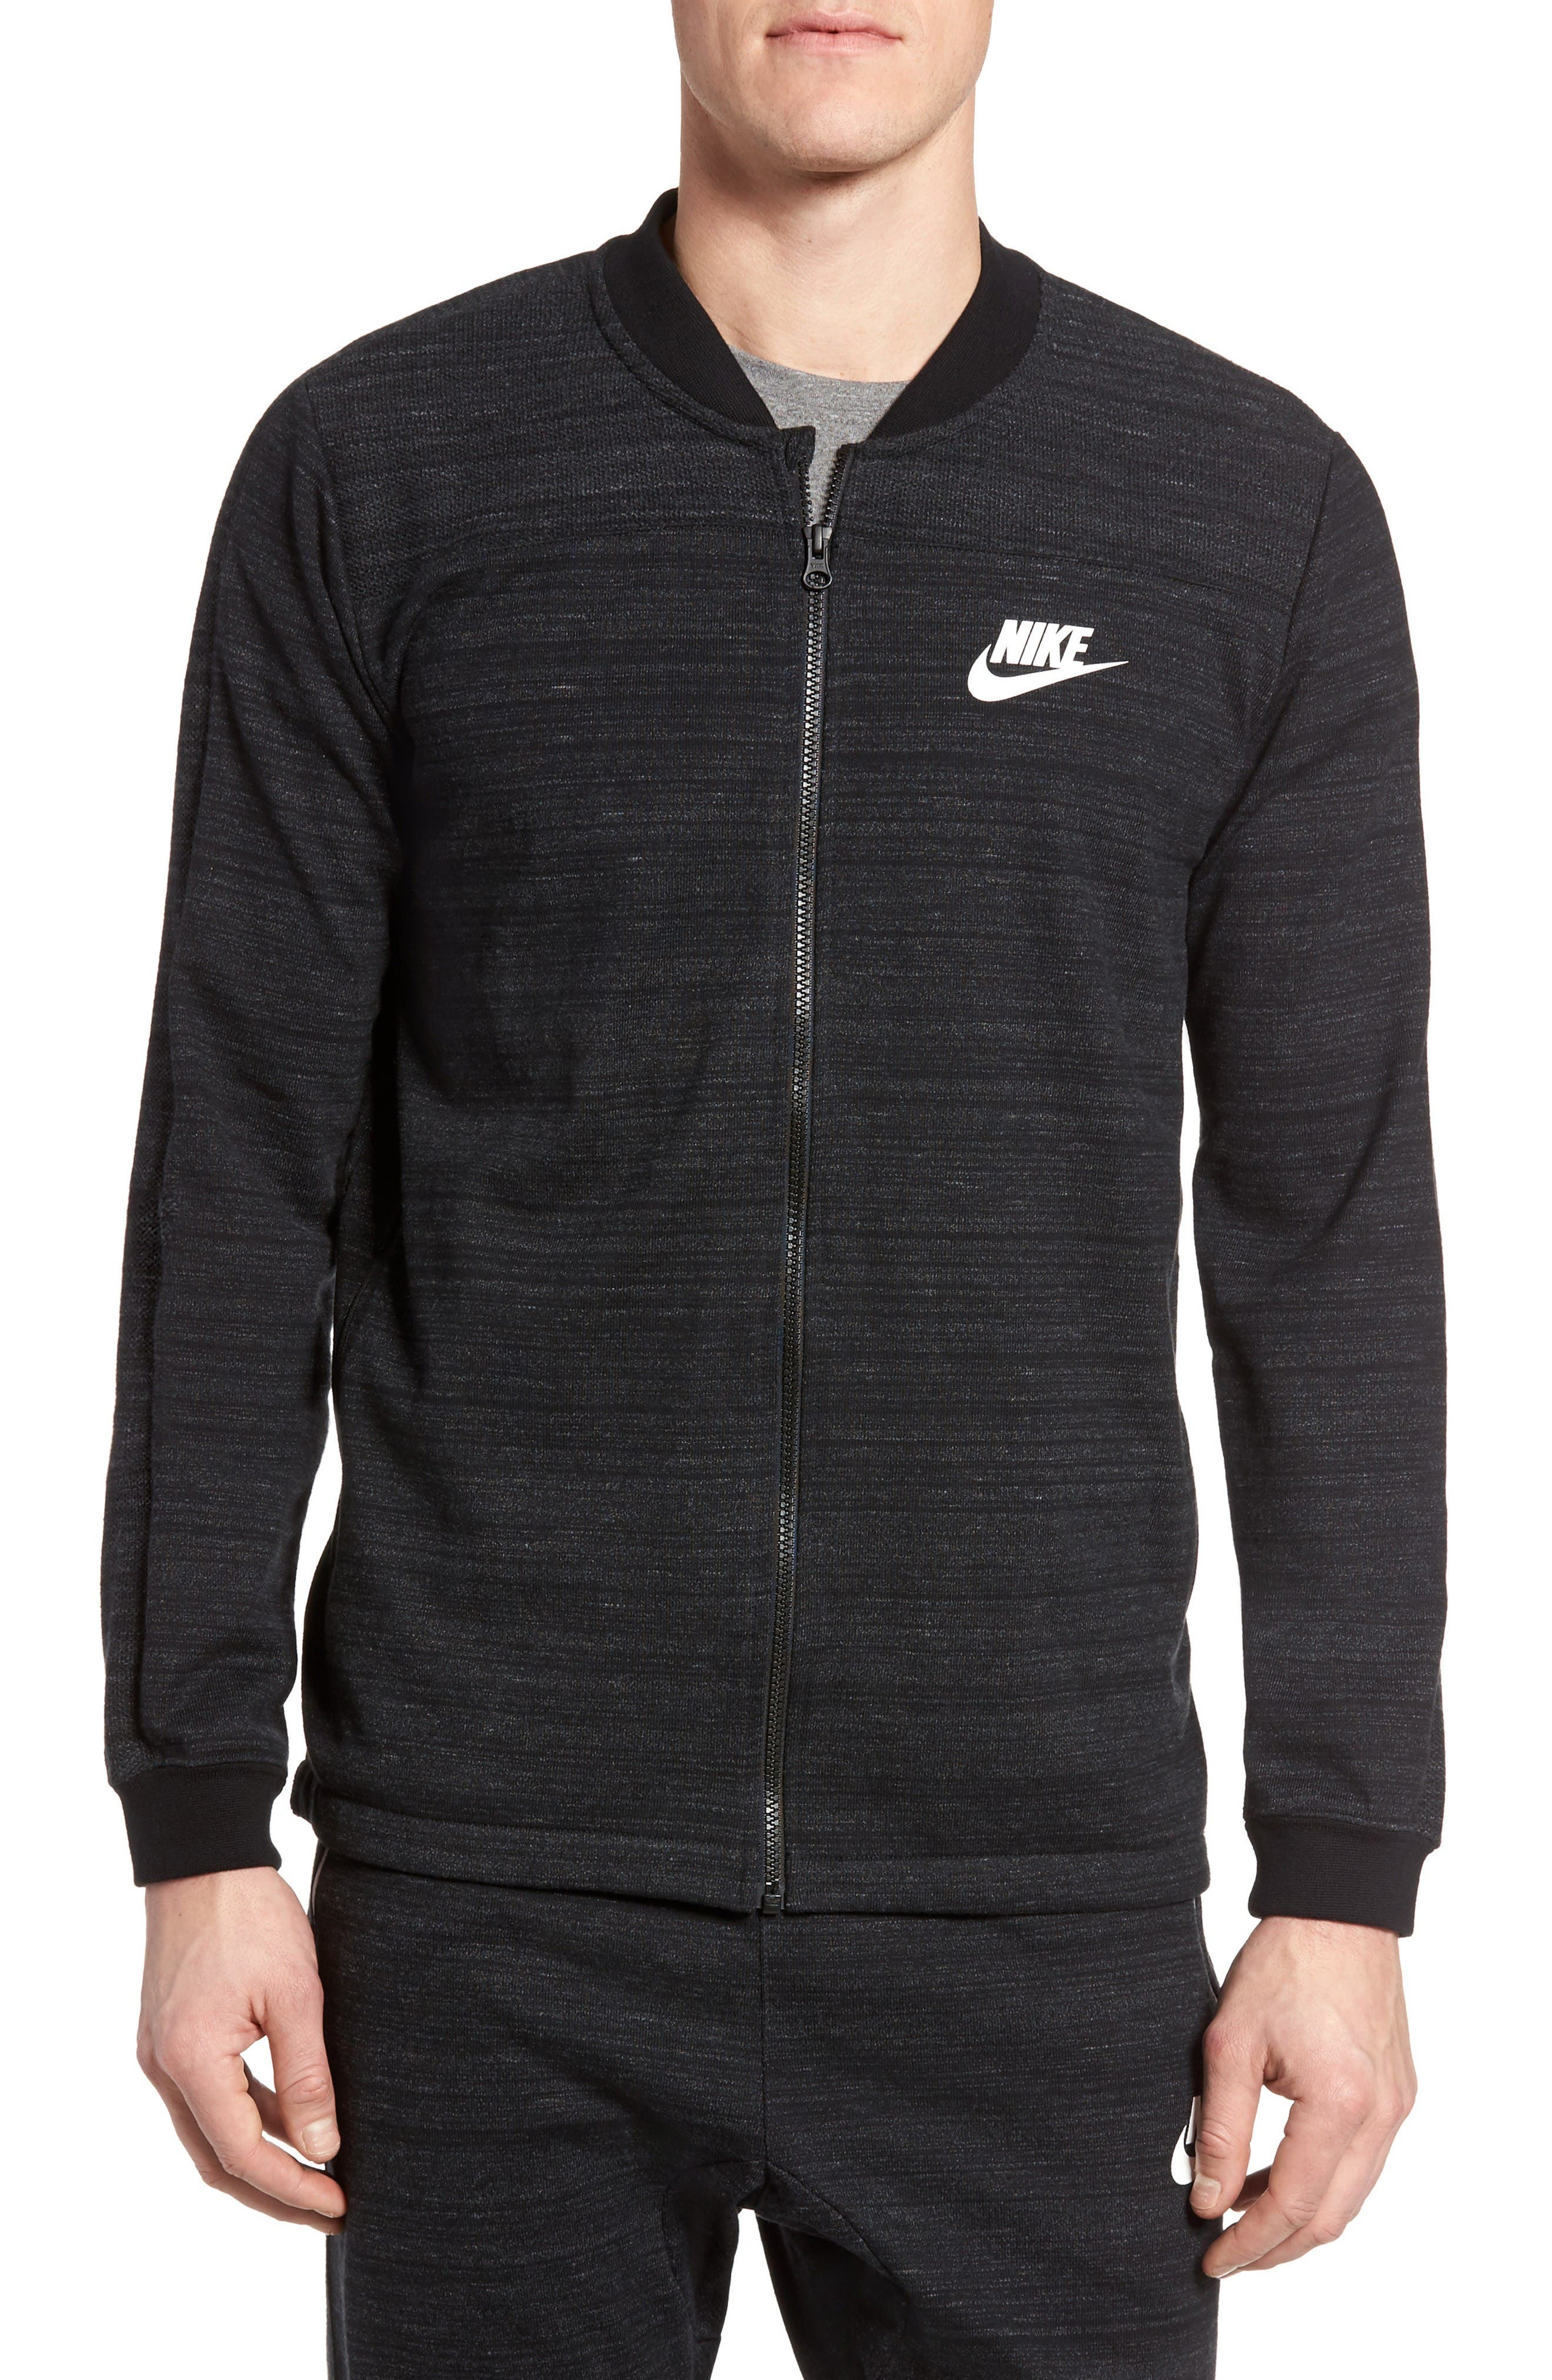 Main Image - Nike Advance 15 Jacket